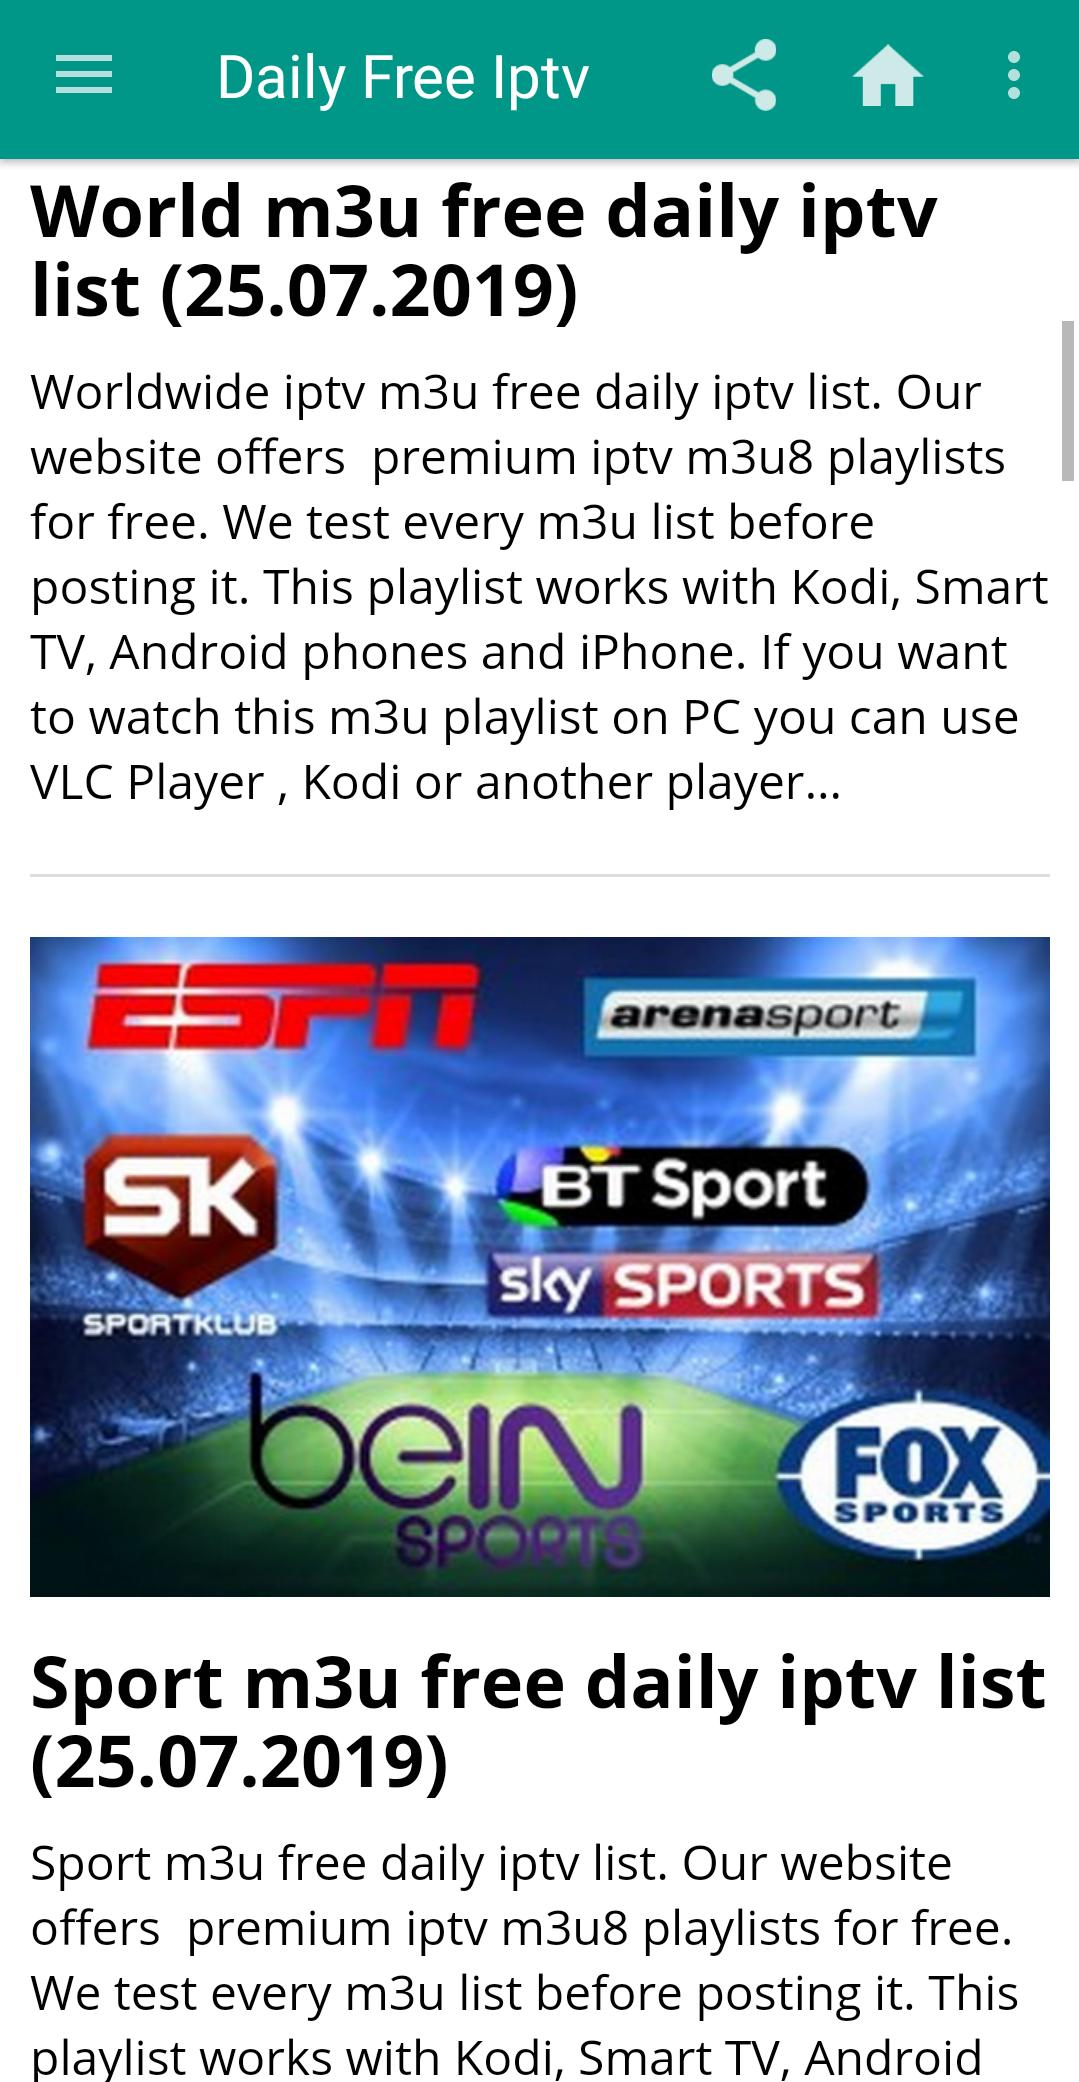 Working Iptv M3u List 2020.Daily Free Iptv Free M3u Link List 2020 For Android Apk